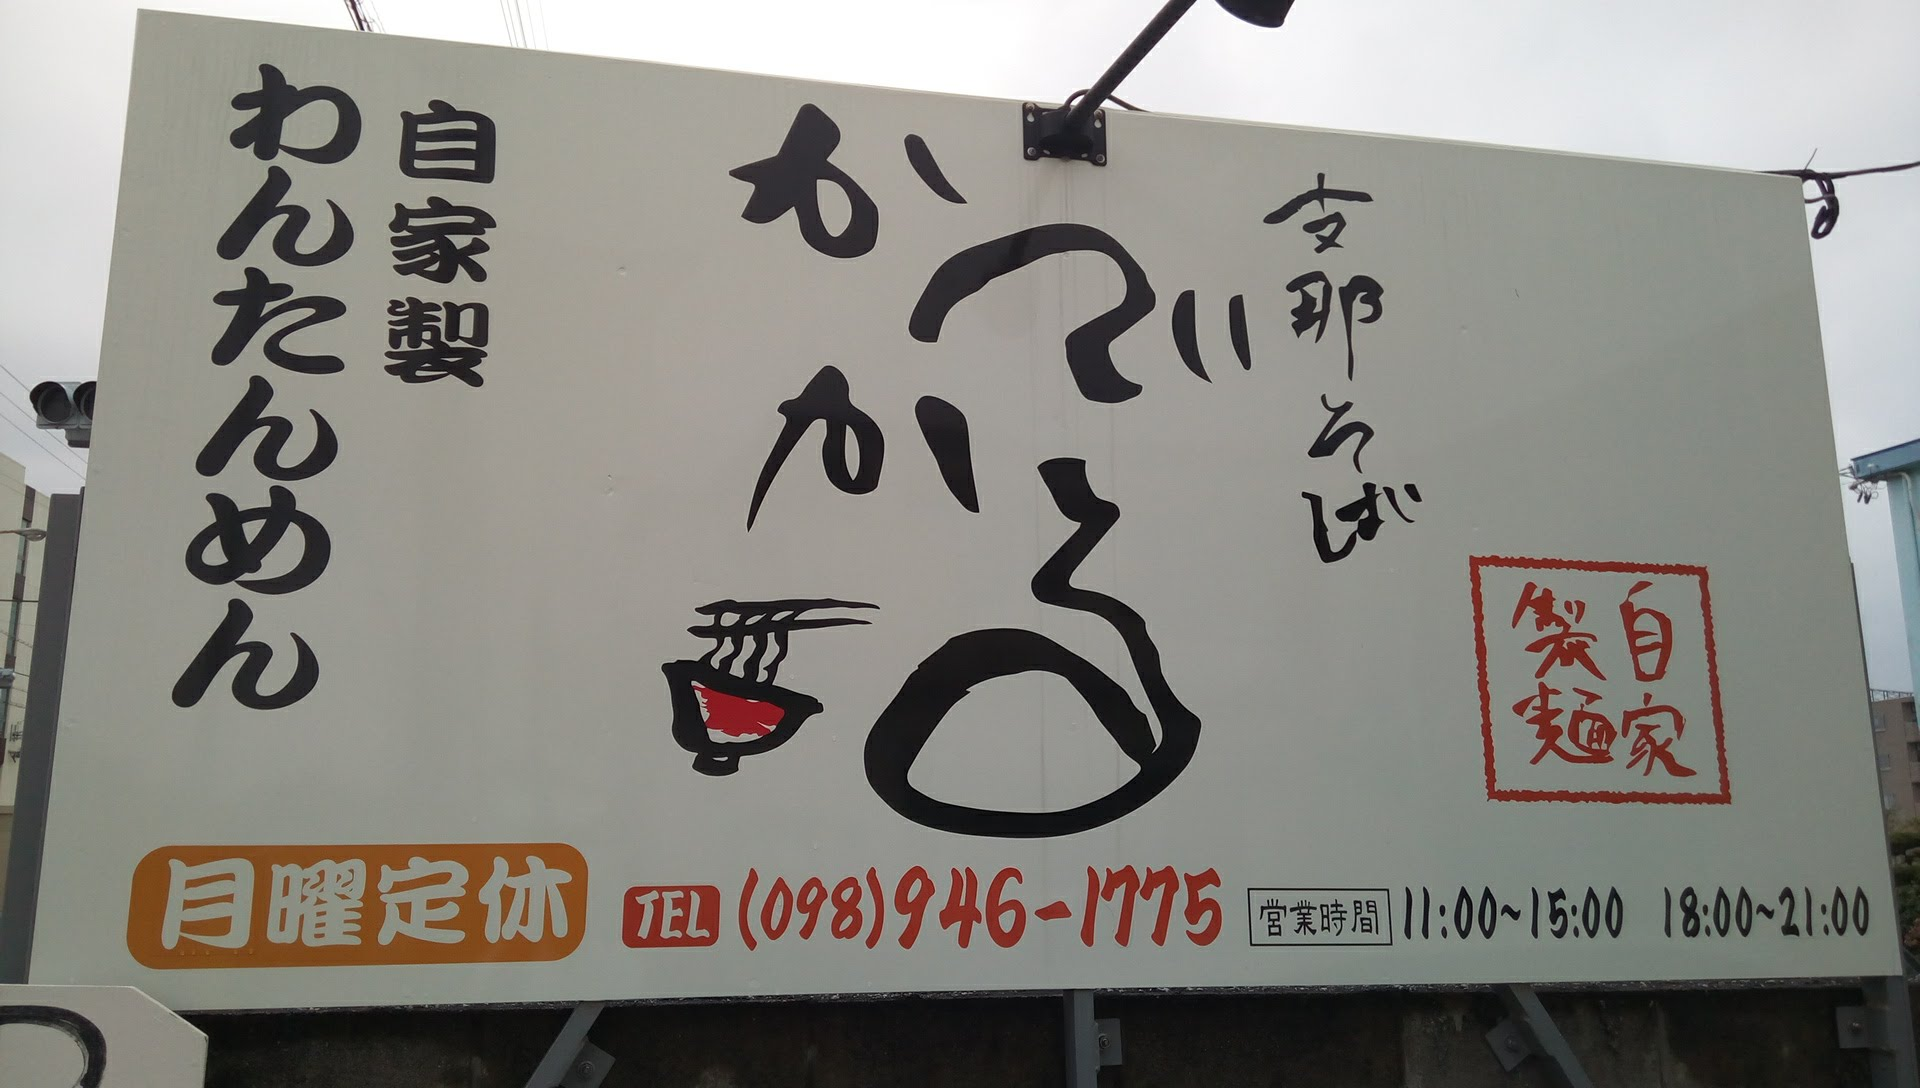 Kadekaru sign